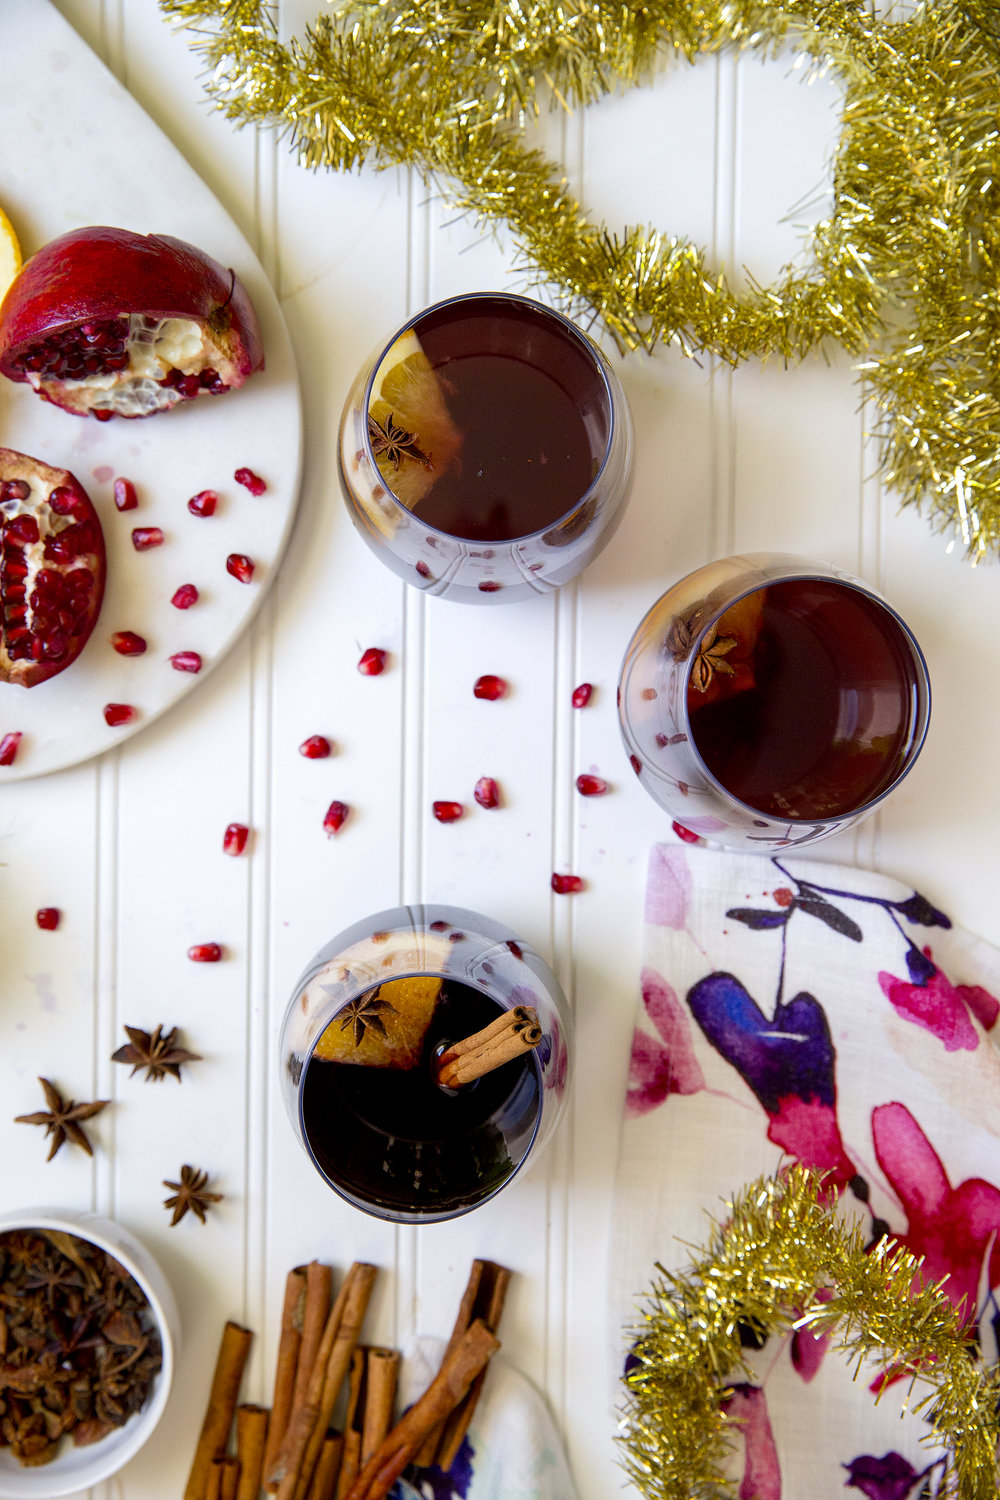 Get this recipe for Mulled Wine from UnusuallyLovely.com